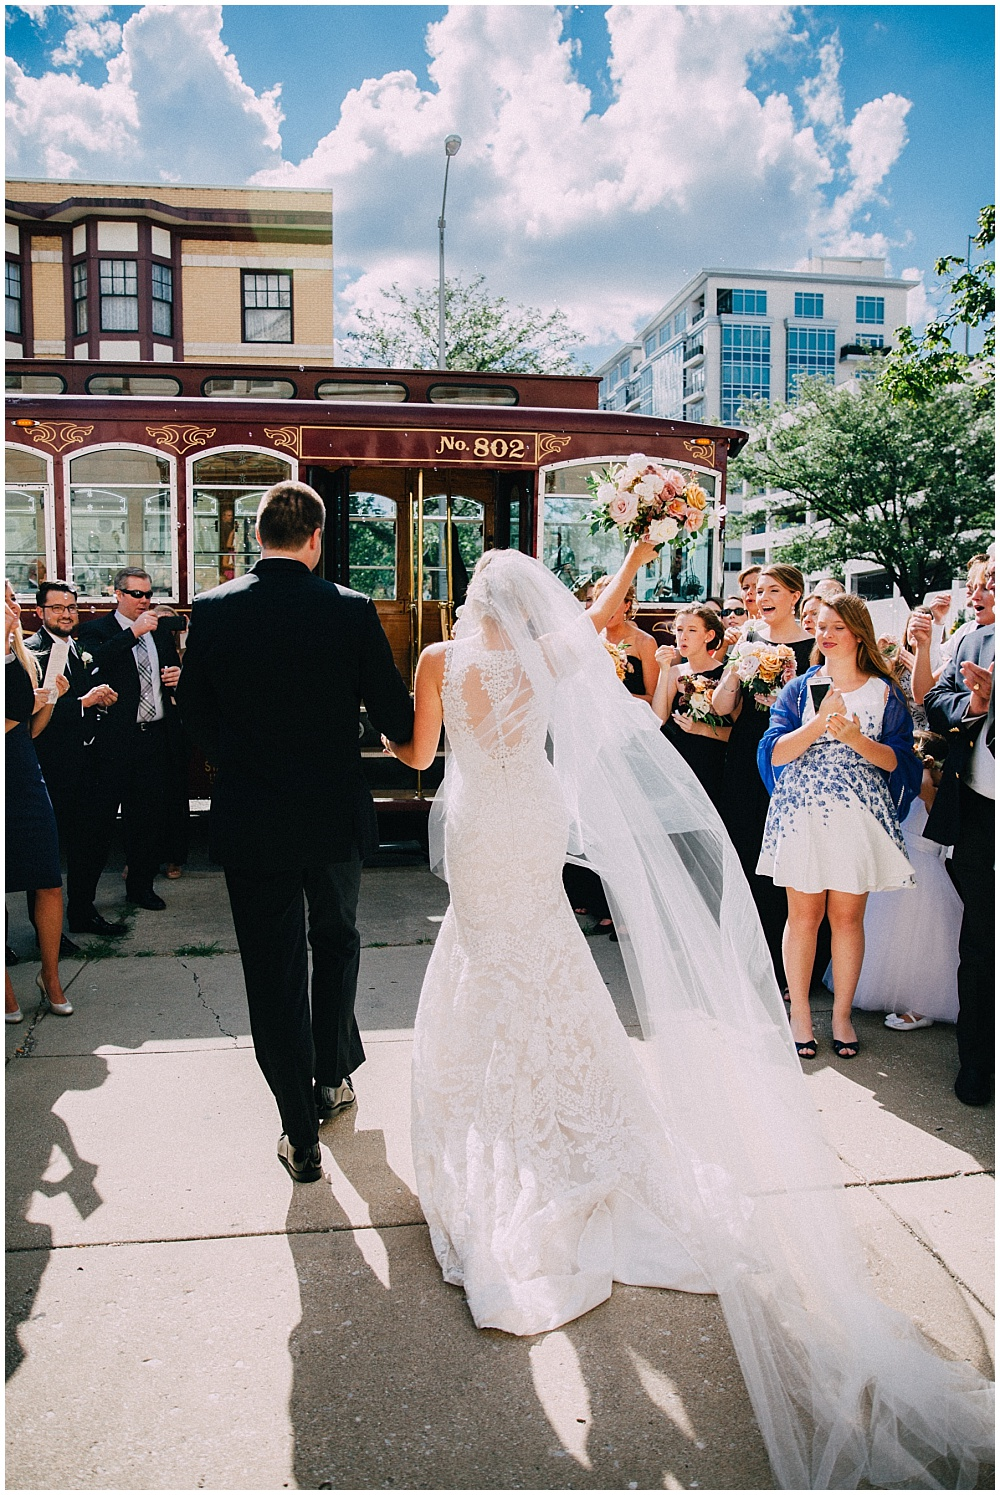 Bride and Groom ceremony exit, and back of lace wedding dress | Downtown Indianapolis Wedding by Caroline Grace Photography & Jessica Dum Wedding Coordination